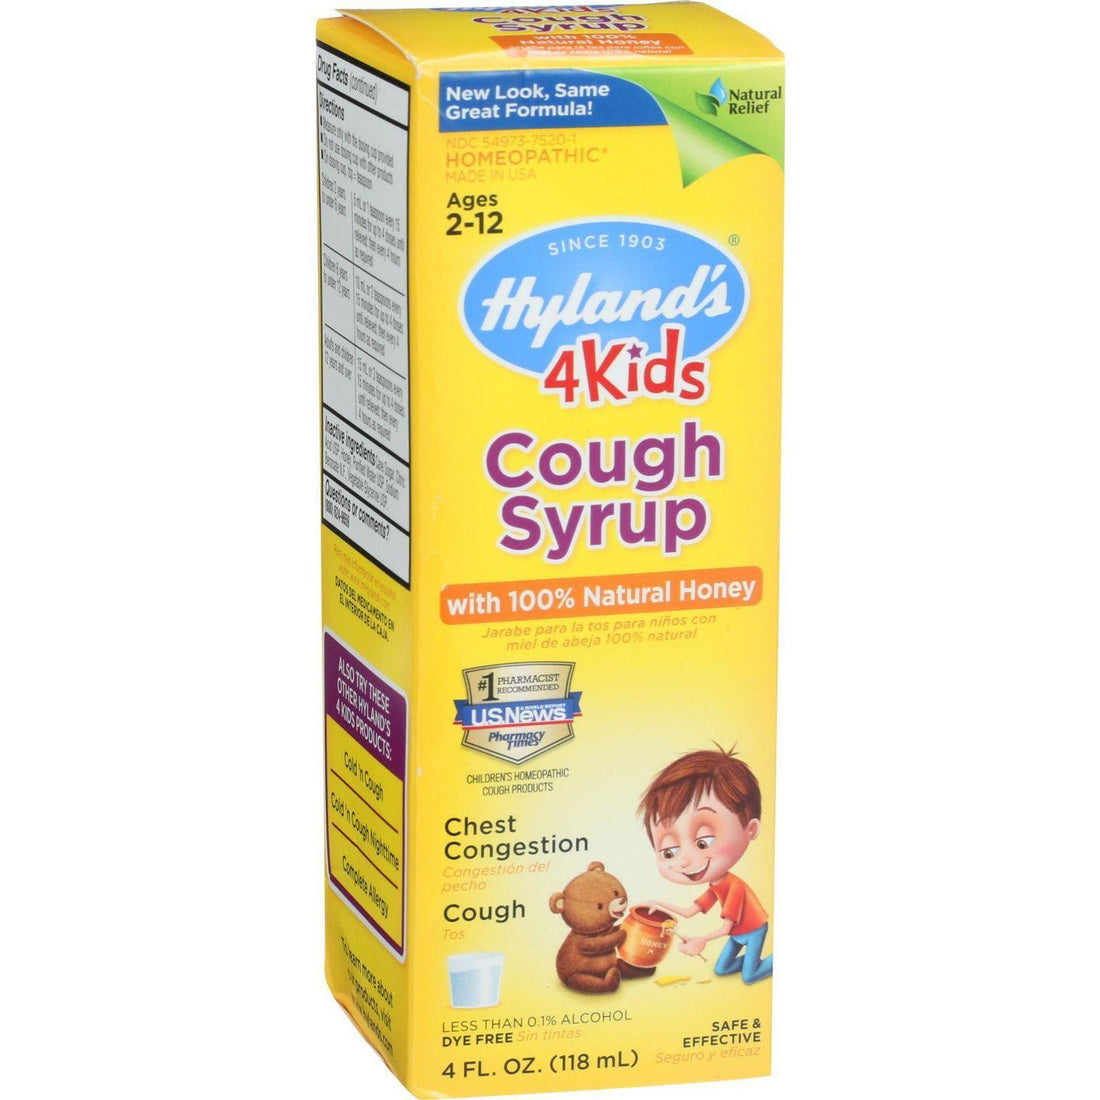 Mother Mantis: Hylands Homeopathic Cough Syrup - 100 Percent Natural Honey - 4 Kids - 4 Oz Hyland's